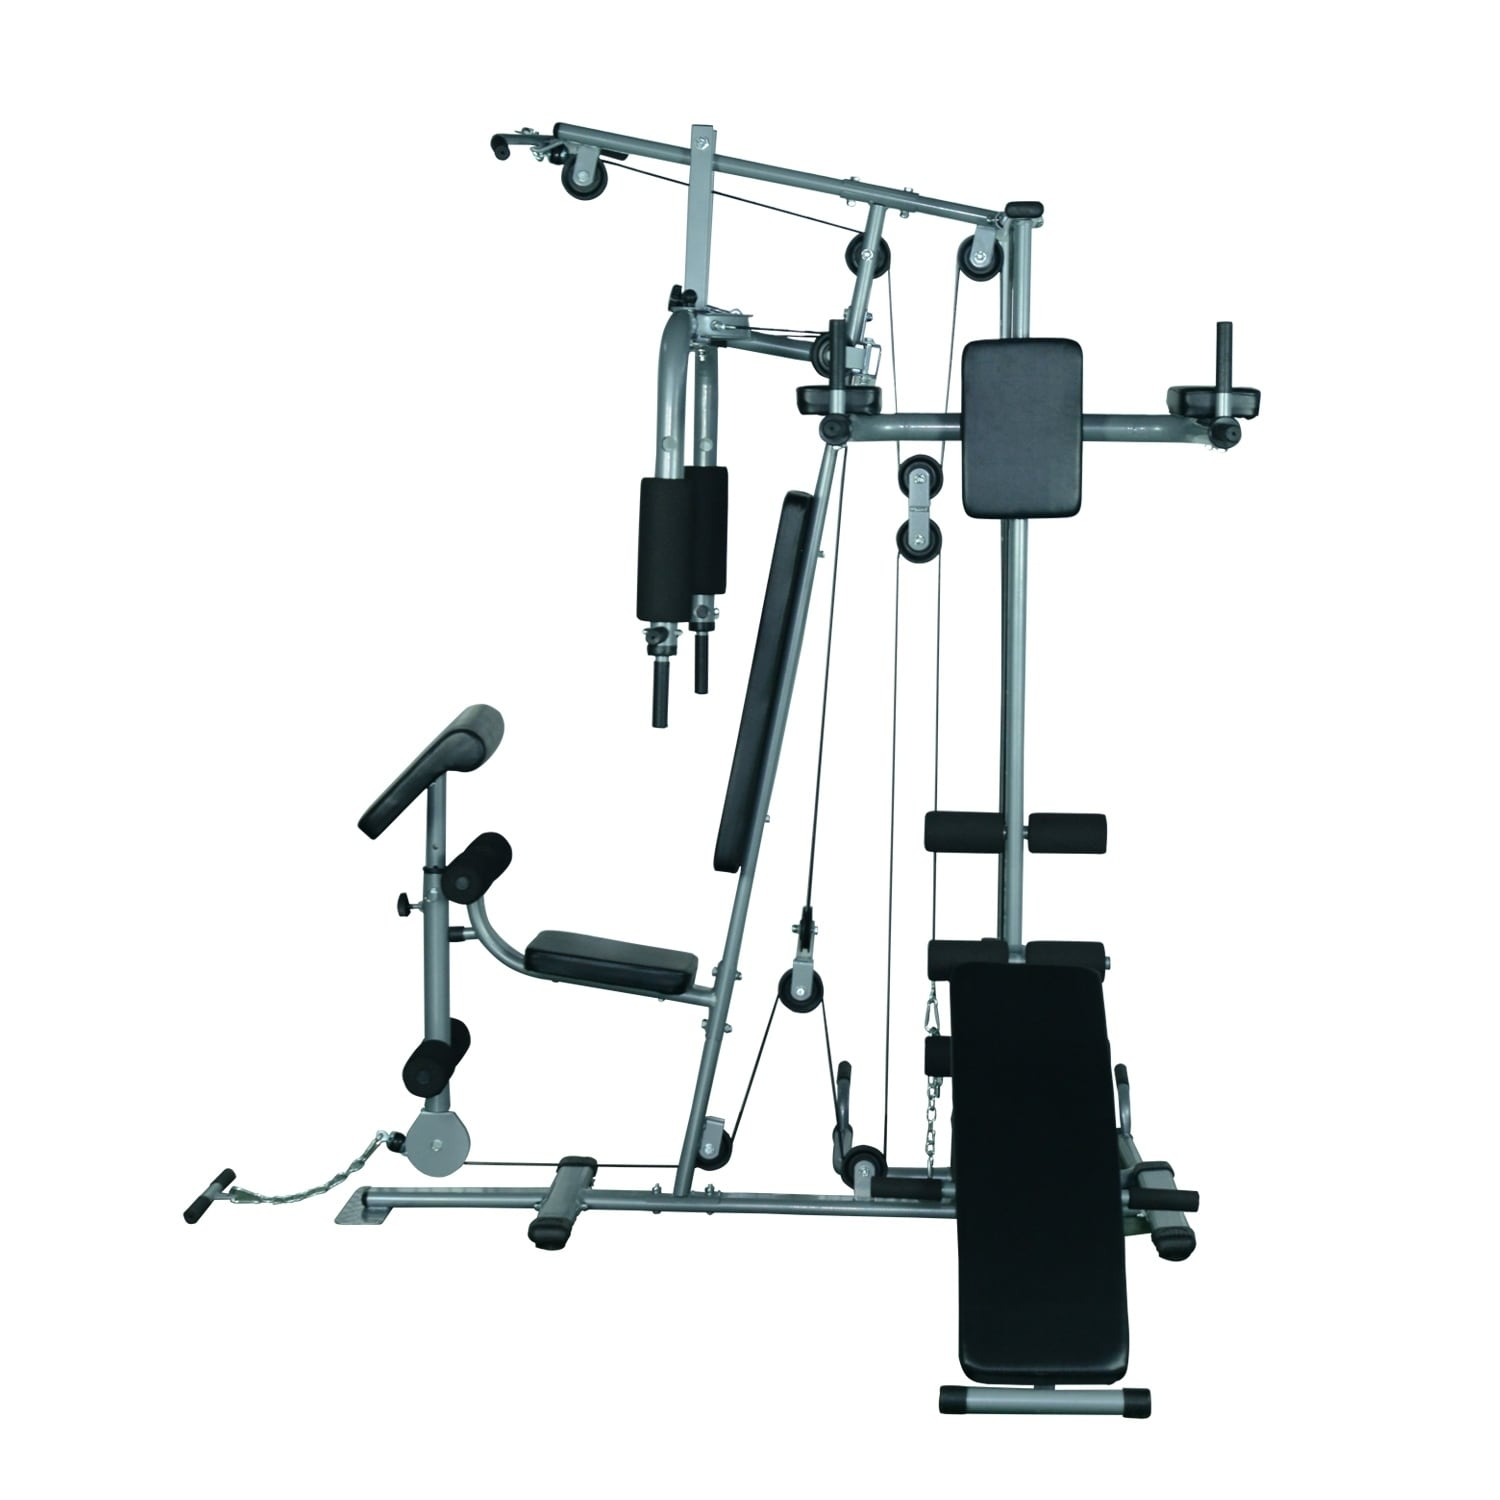 Shop Soozier Complete Home Fitness Station Gym Machine With Weight Stack